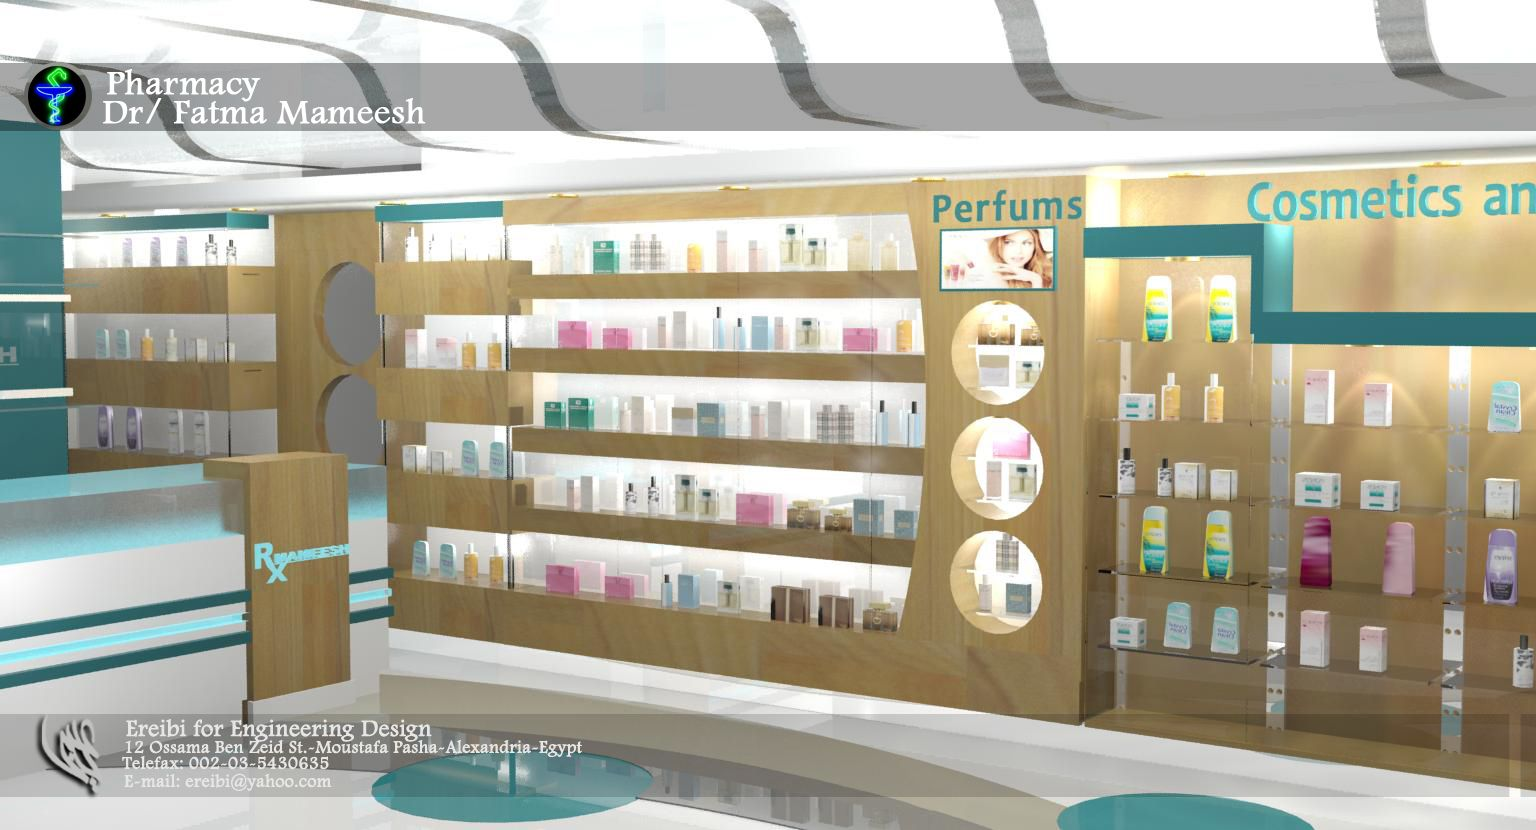 pharmacy design ideas google search - Pharmacy Design Ideas